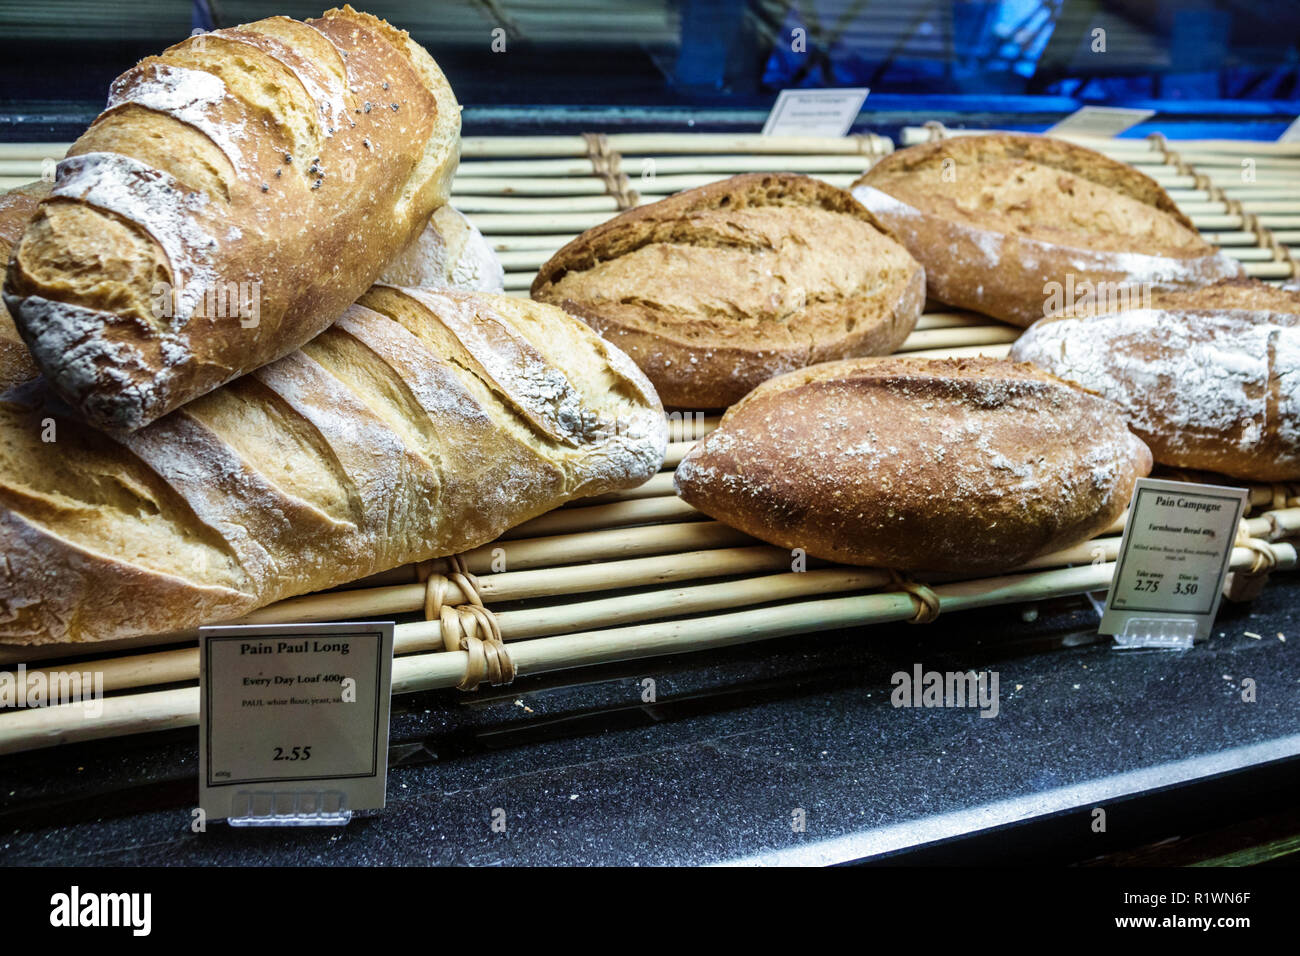 London England United Kingdom Great Britain South Kensington PAUL Bakery & Cafe loaf artisanal pain de campagne farmhouse bread display sale - Stock Image